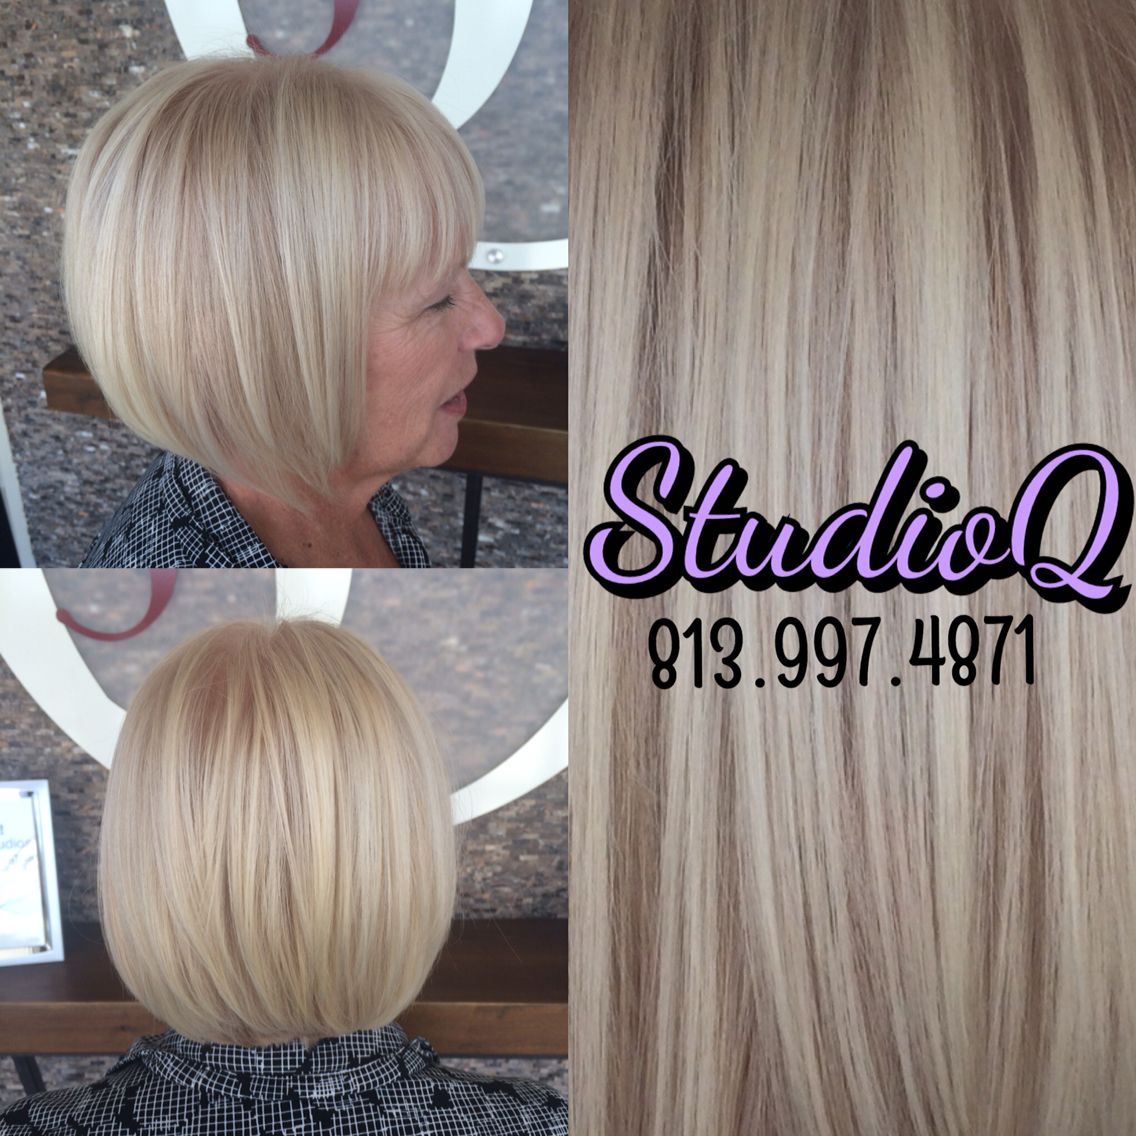 For Judys Bob We Retouched Her With Paul Mitchell The Color 9a 9n